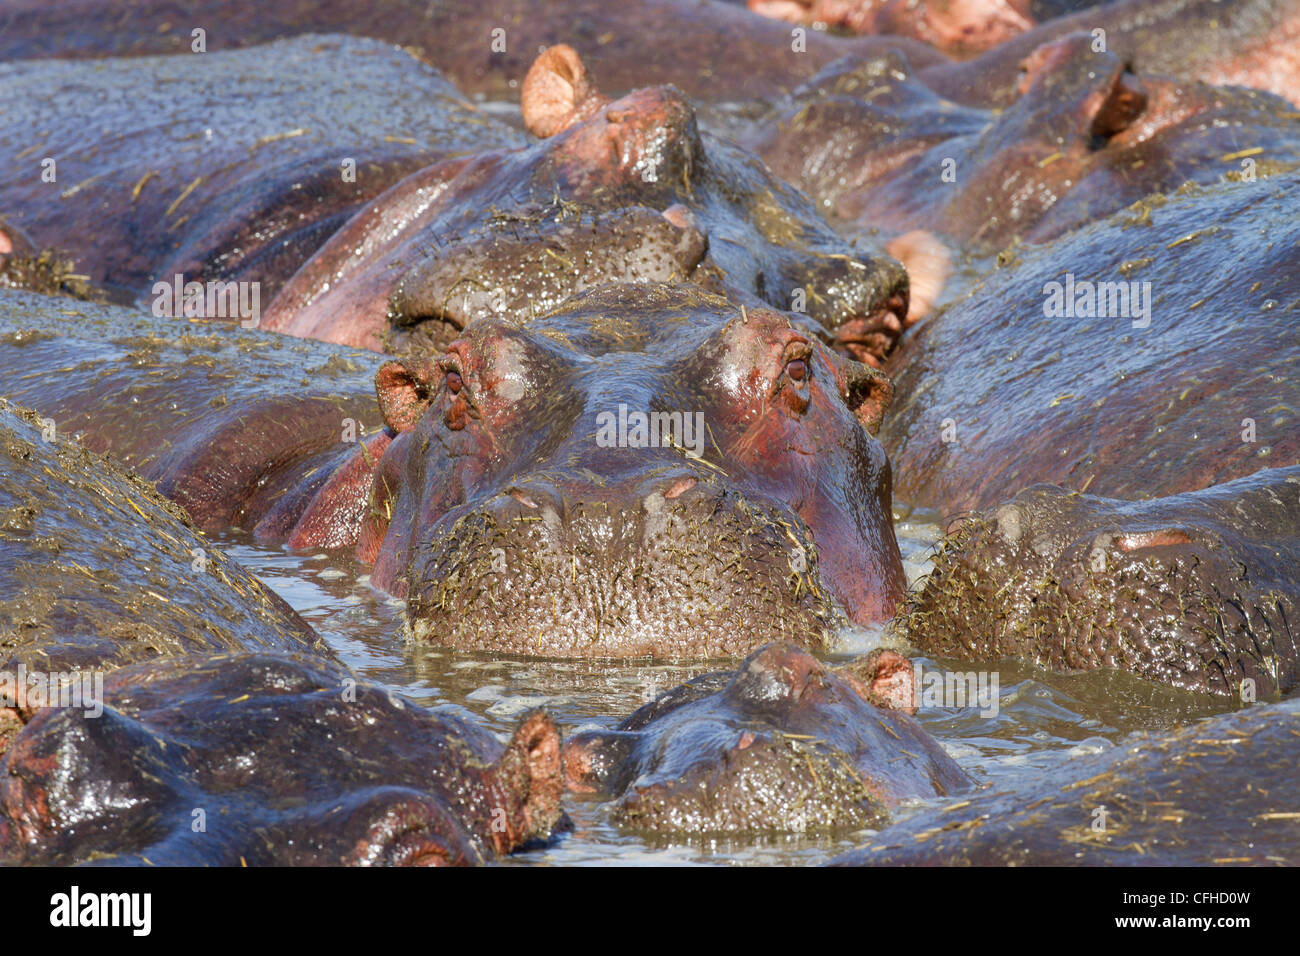 Hippo wallowing in crowded pool - Stock Image